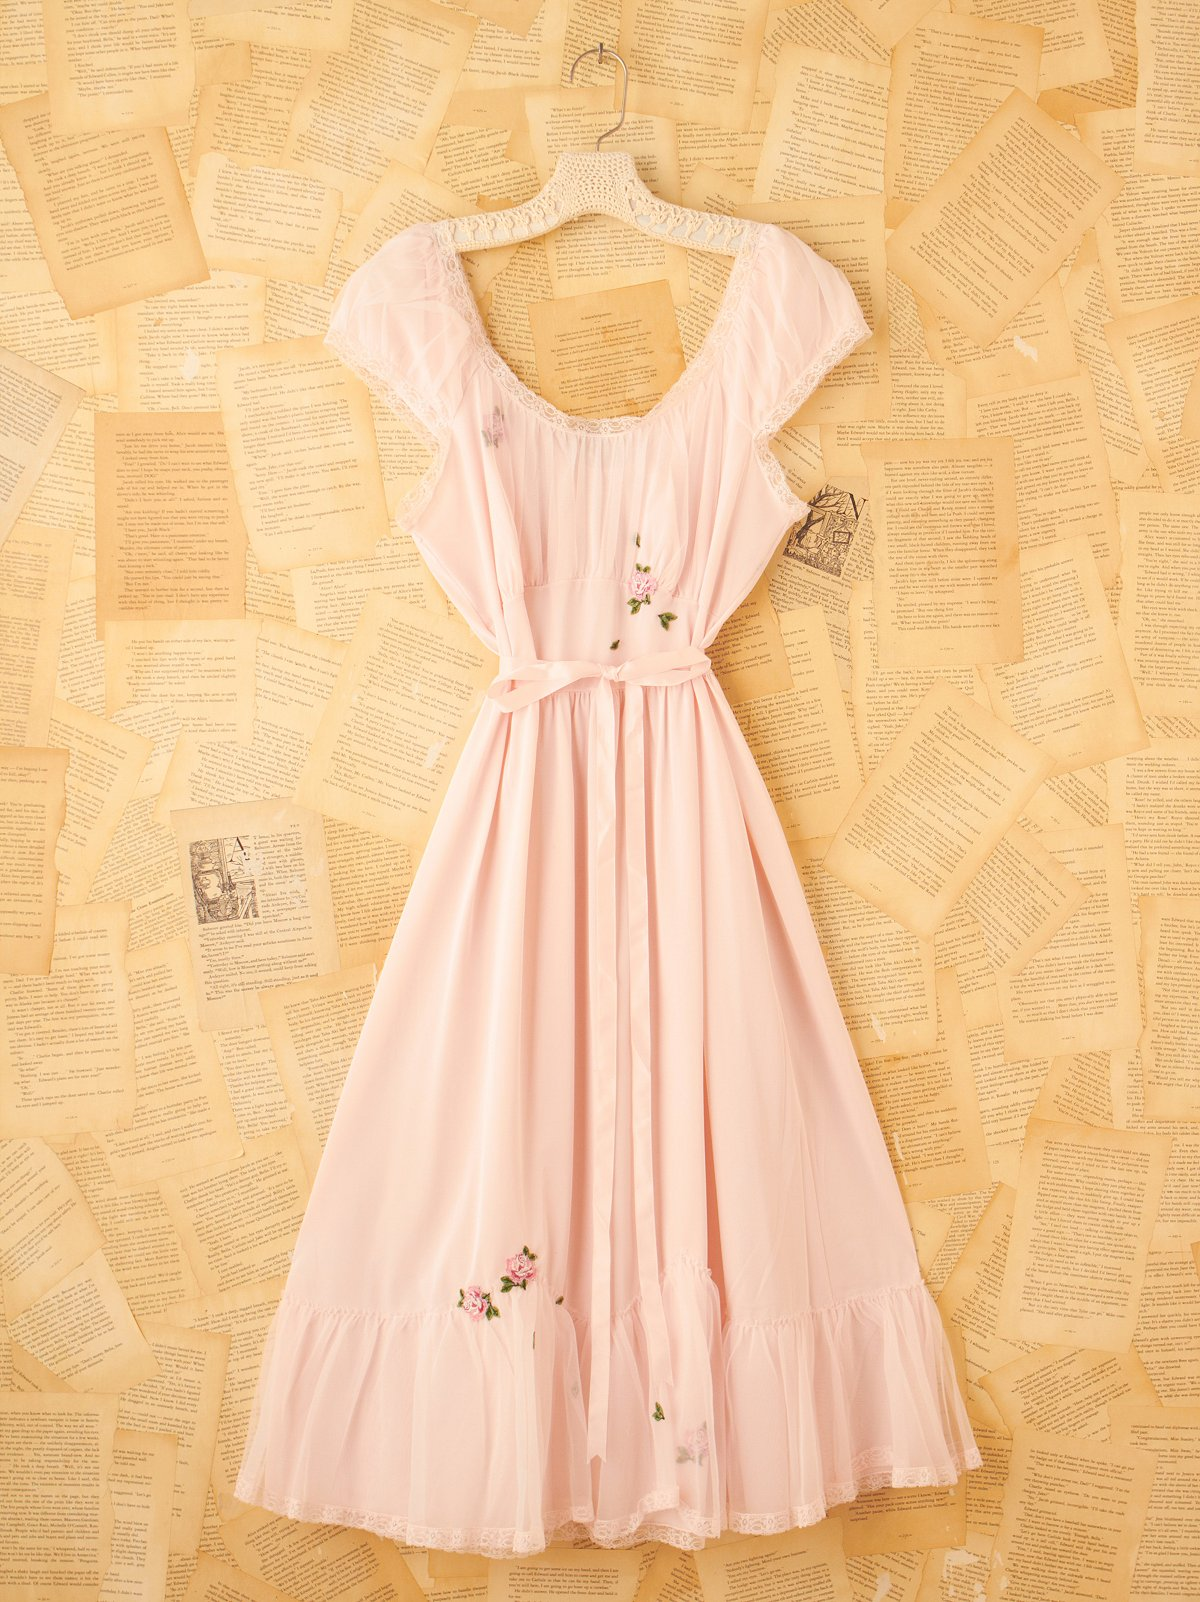 Vintage Pink Slip Dress with Rose Embroidery